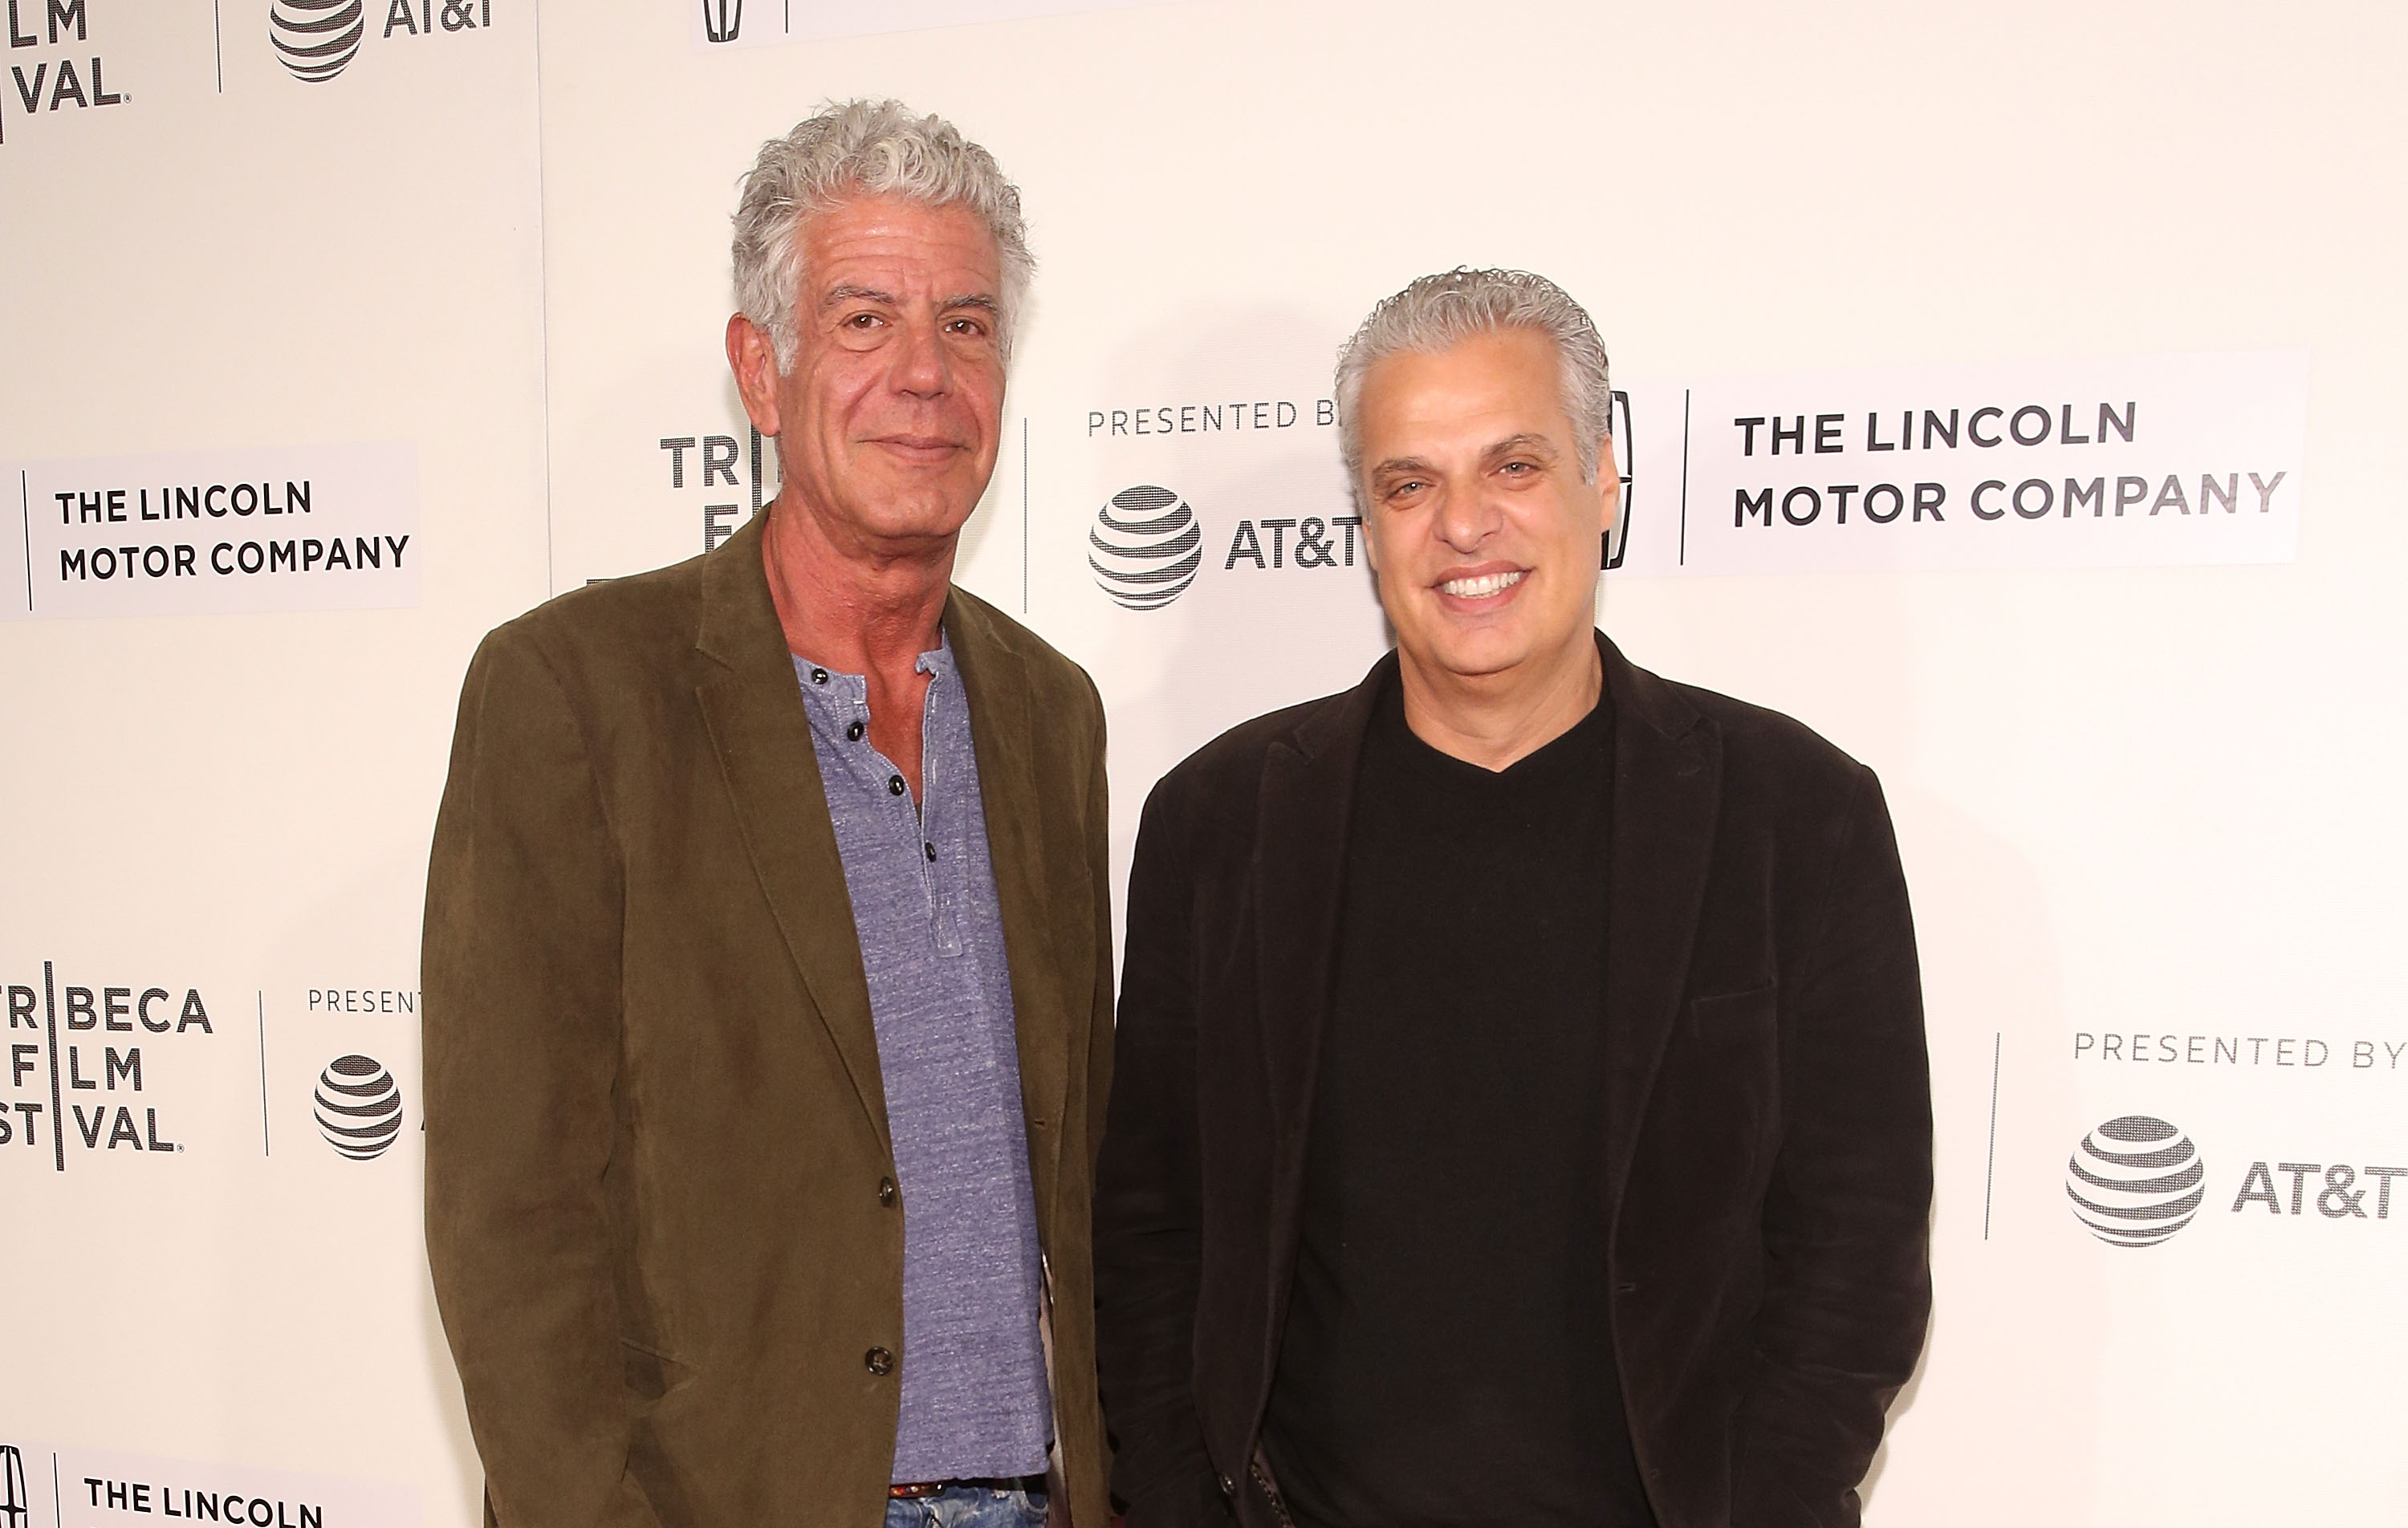 Anthony Bourdain and Eric Ripert attend 'WASTED! The Story of Food Waste' Premiere during 2017 Tribeca Film Festival at BMCC Tribeca PAC on April 22, 2017 in New York City. (Photo by Robin Marchant/Getty Images for Tribeca Film Festival)